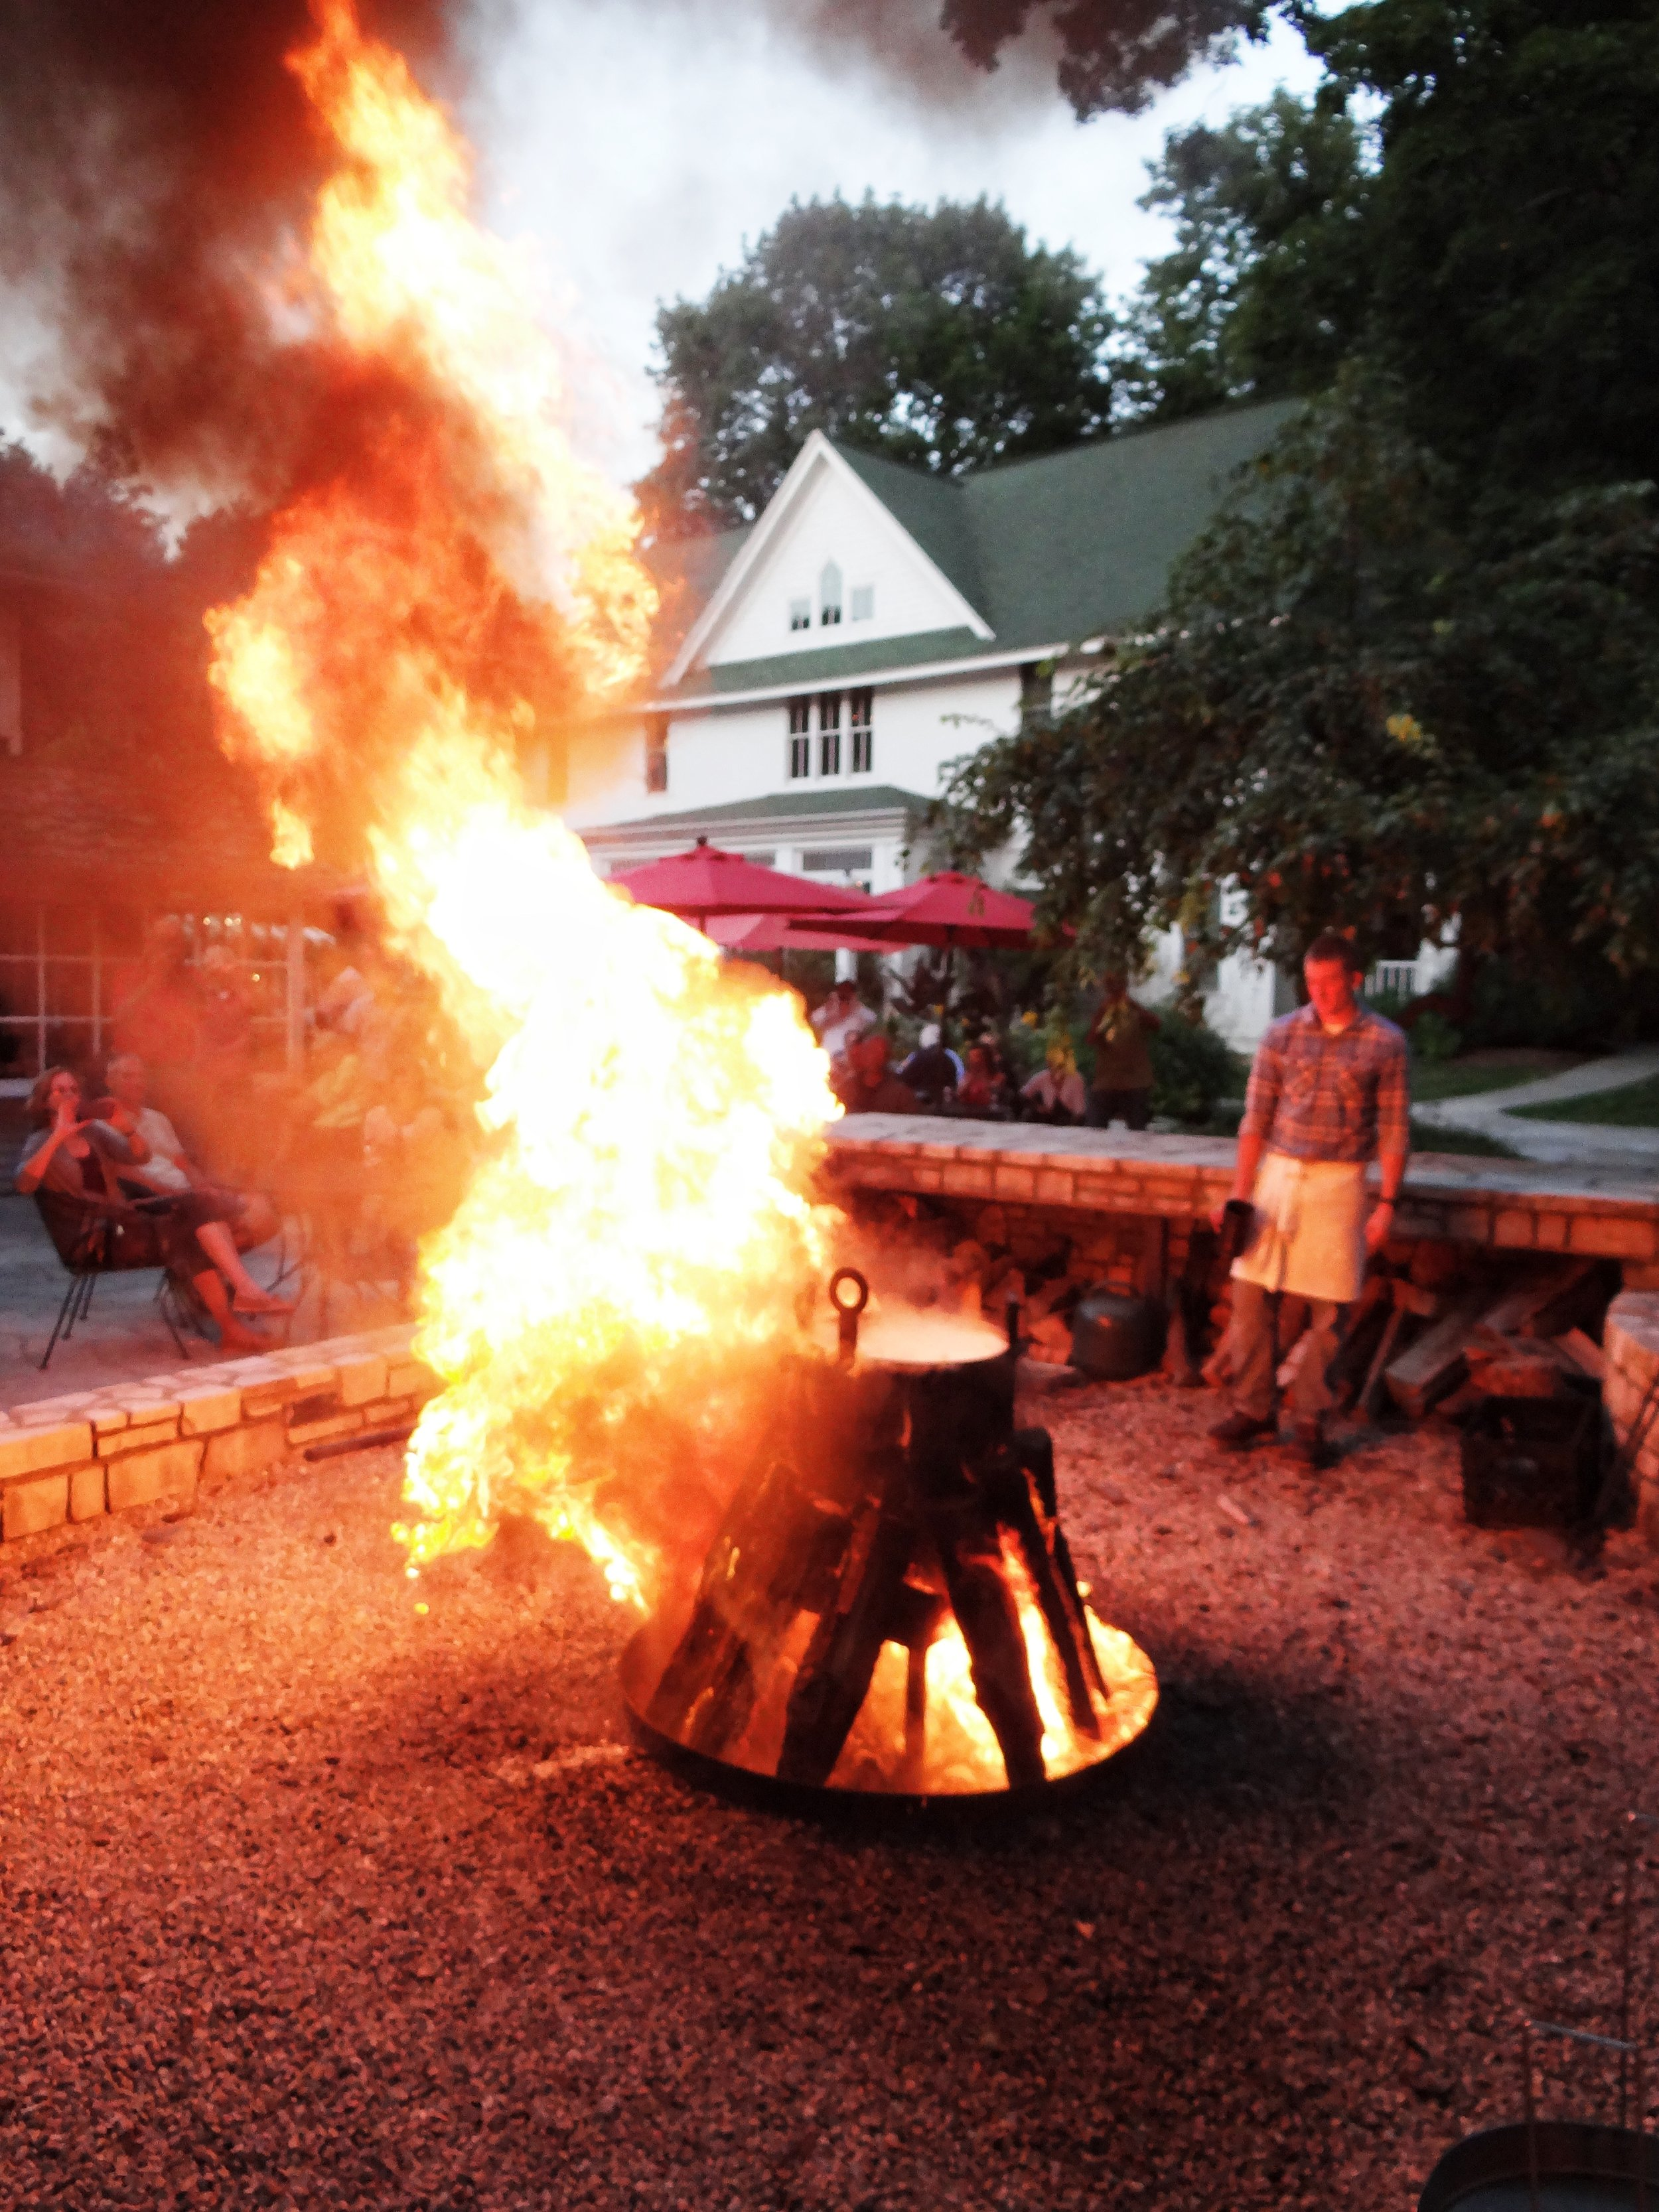 A Door County tradition: Fish boil at the White Gull Inn